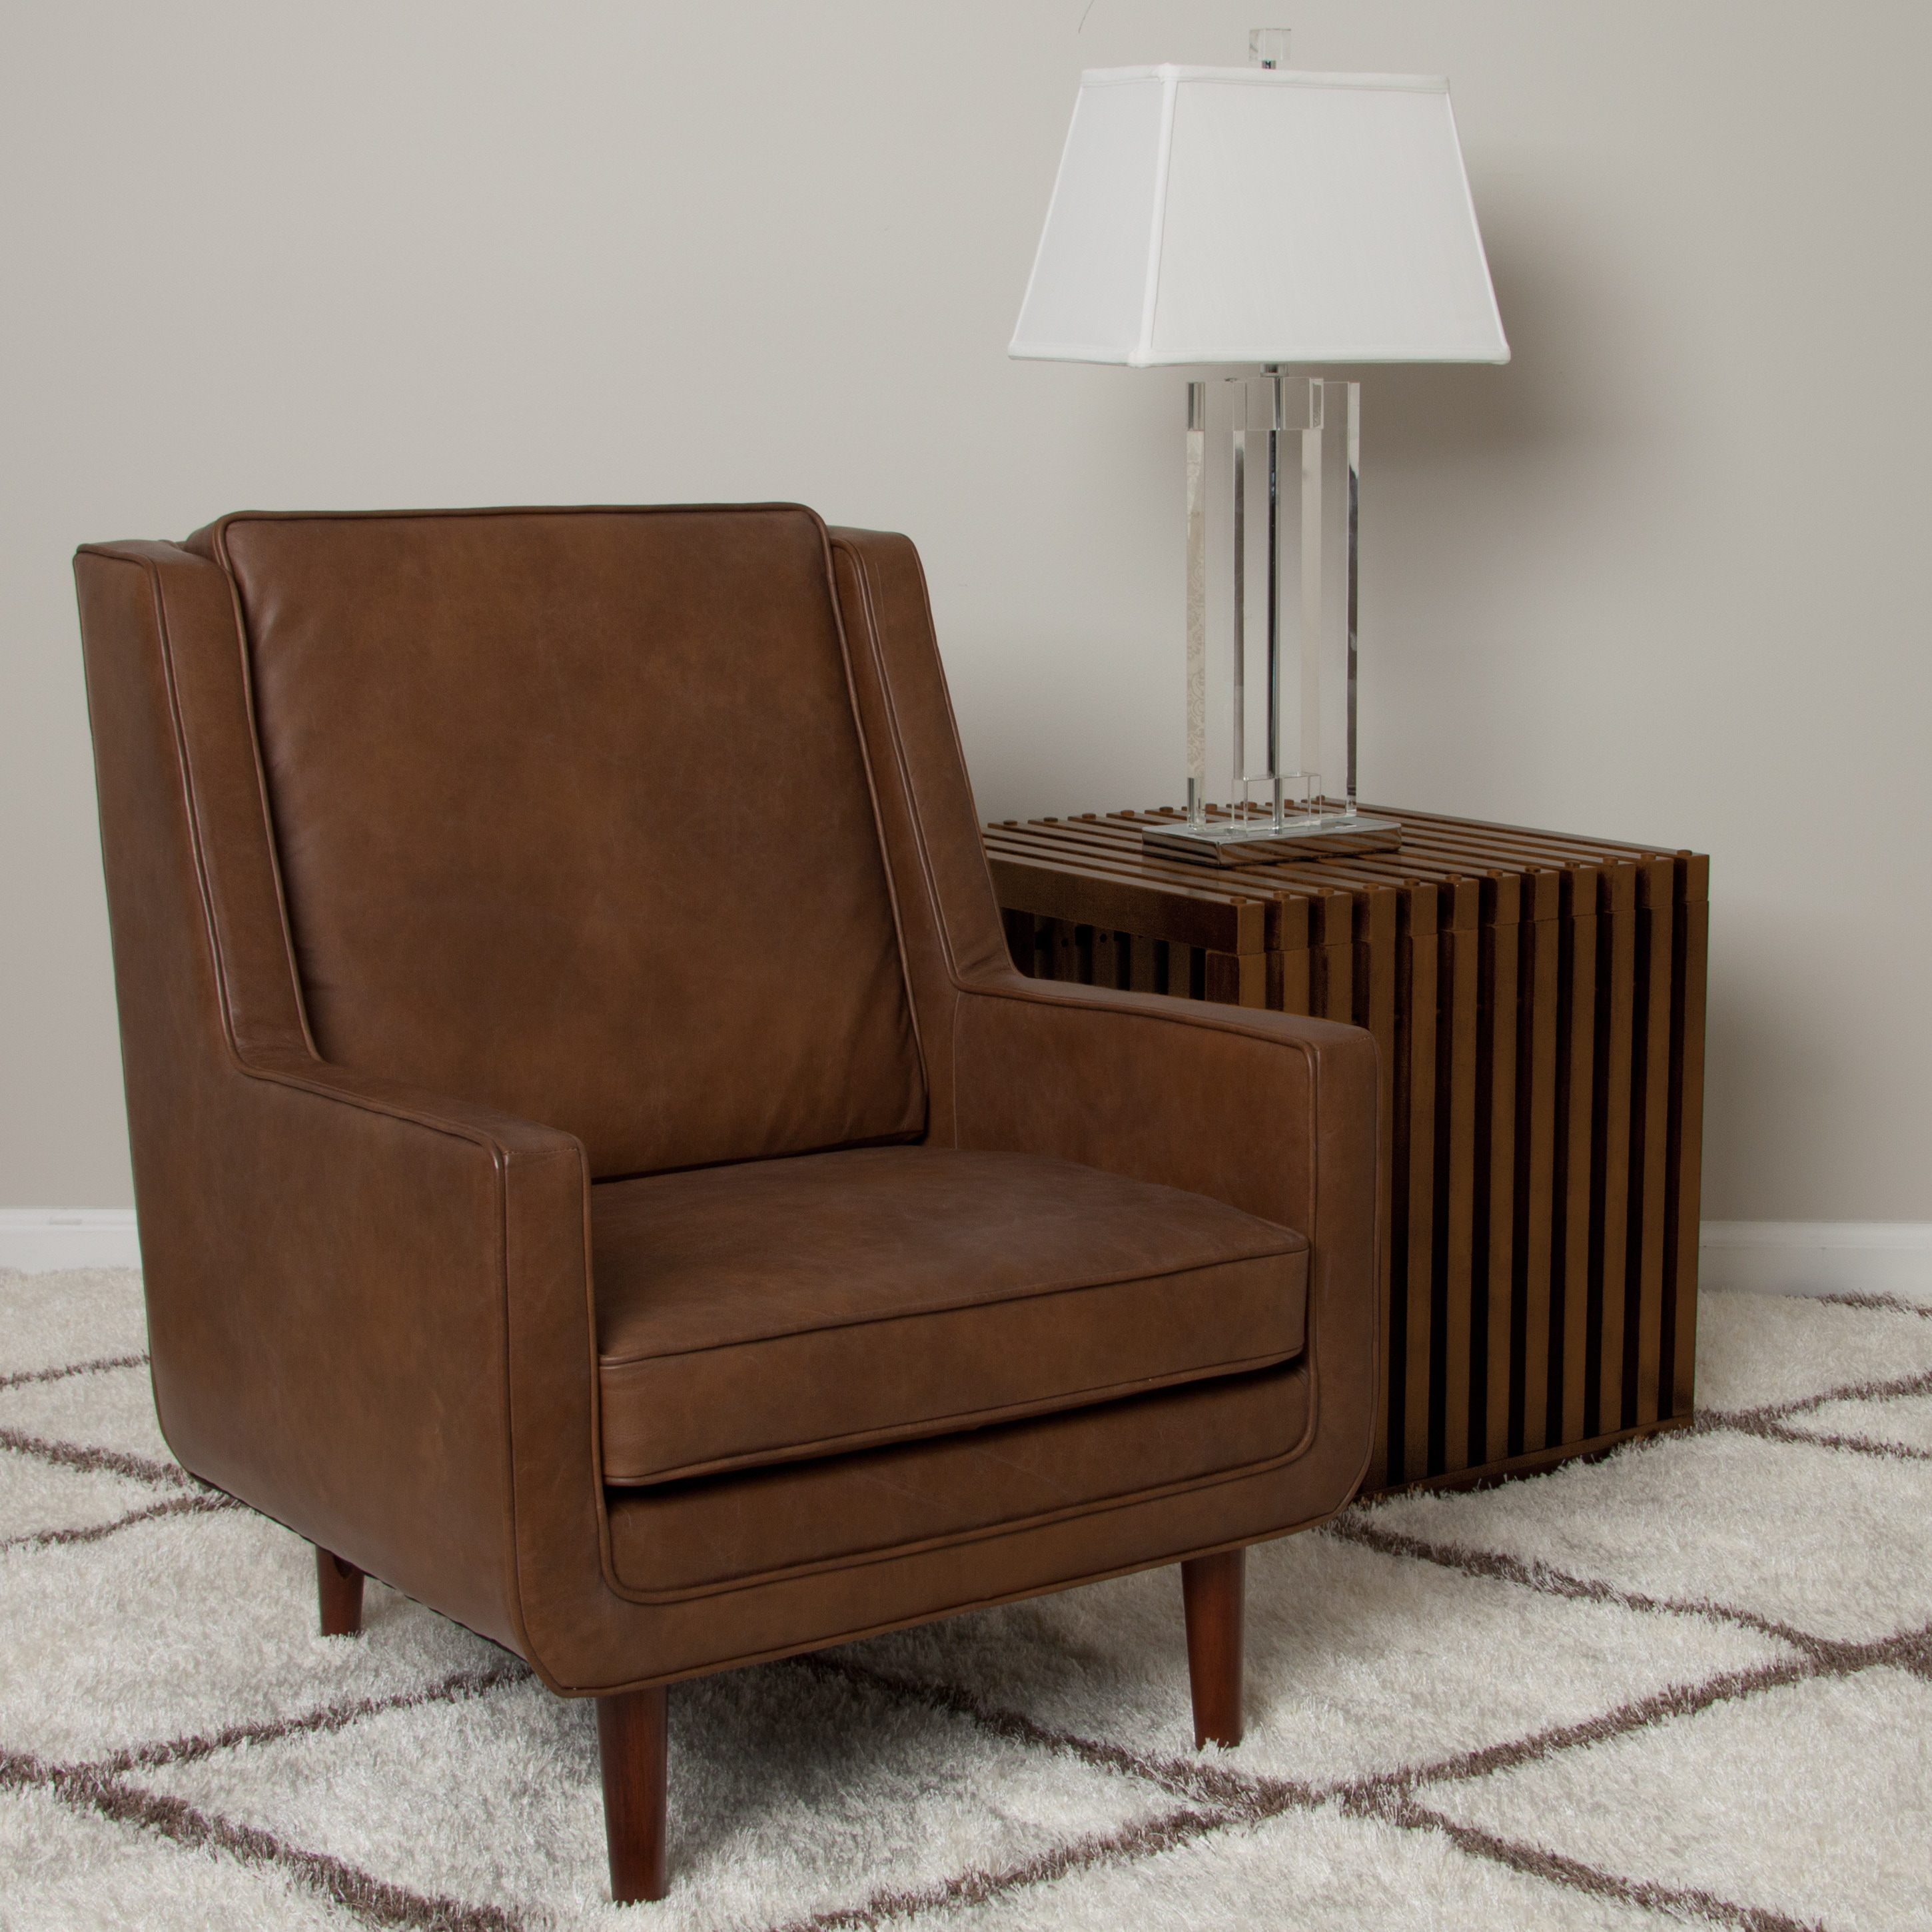 Moss Oxford Leather Tan Accent Chair Overstock Shopping